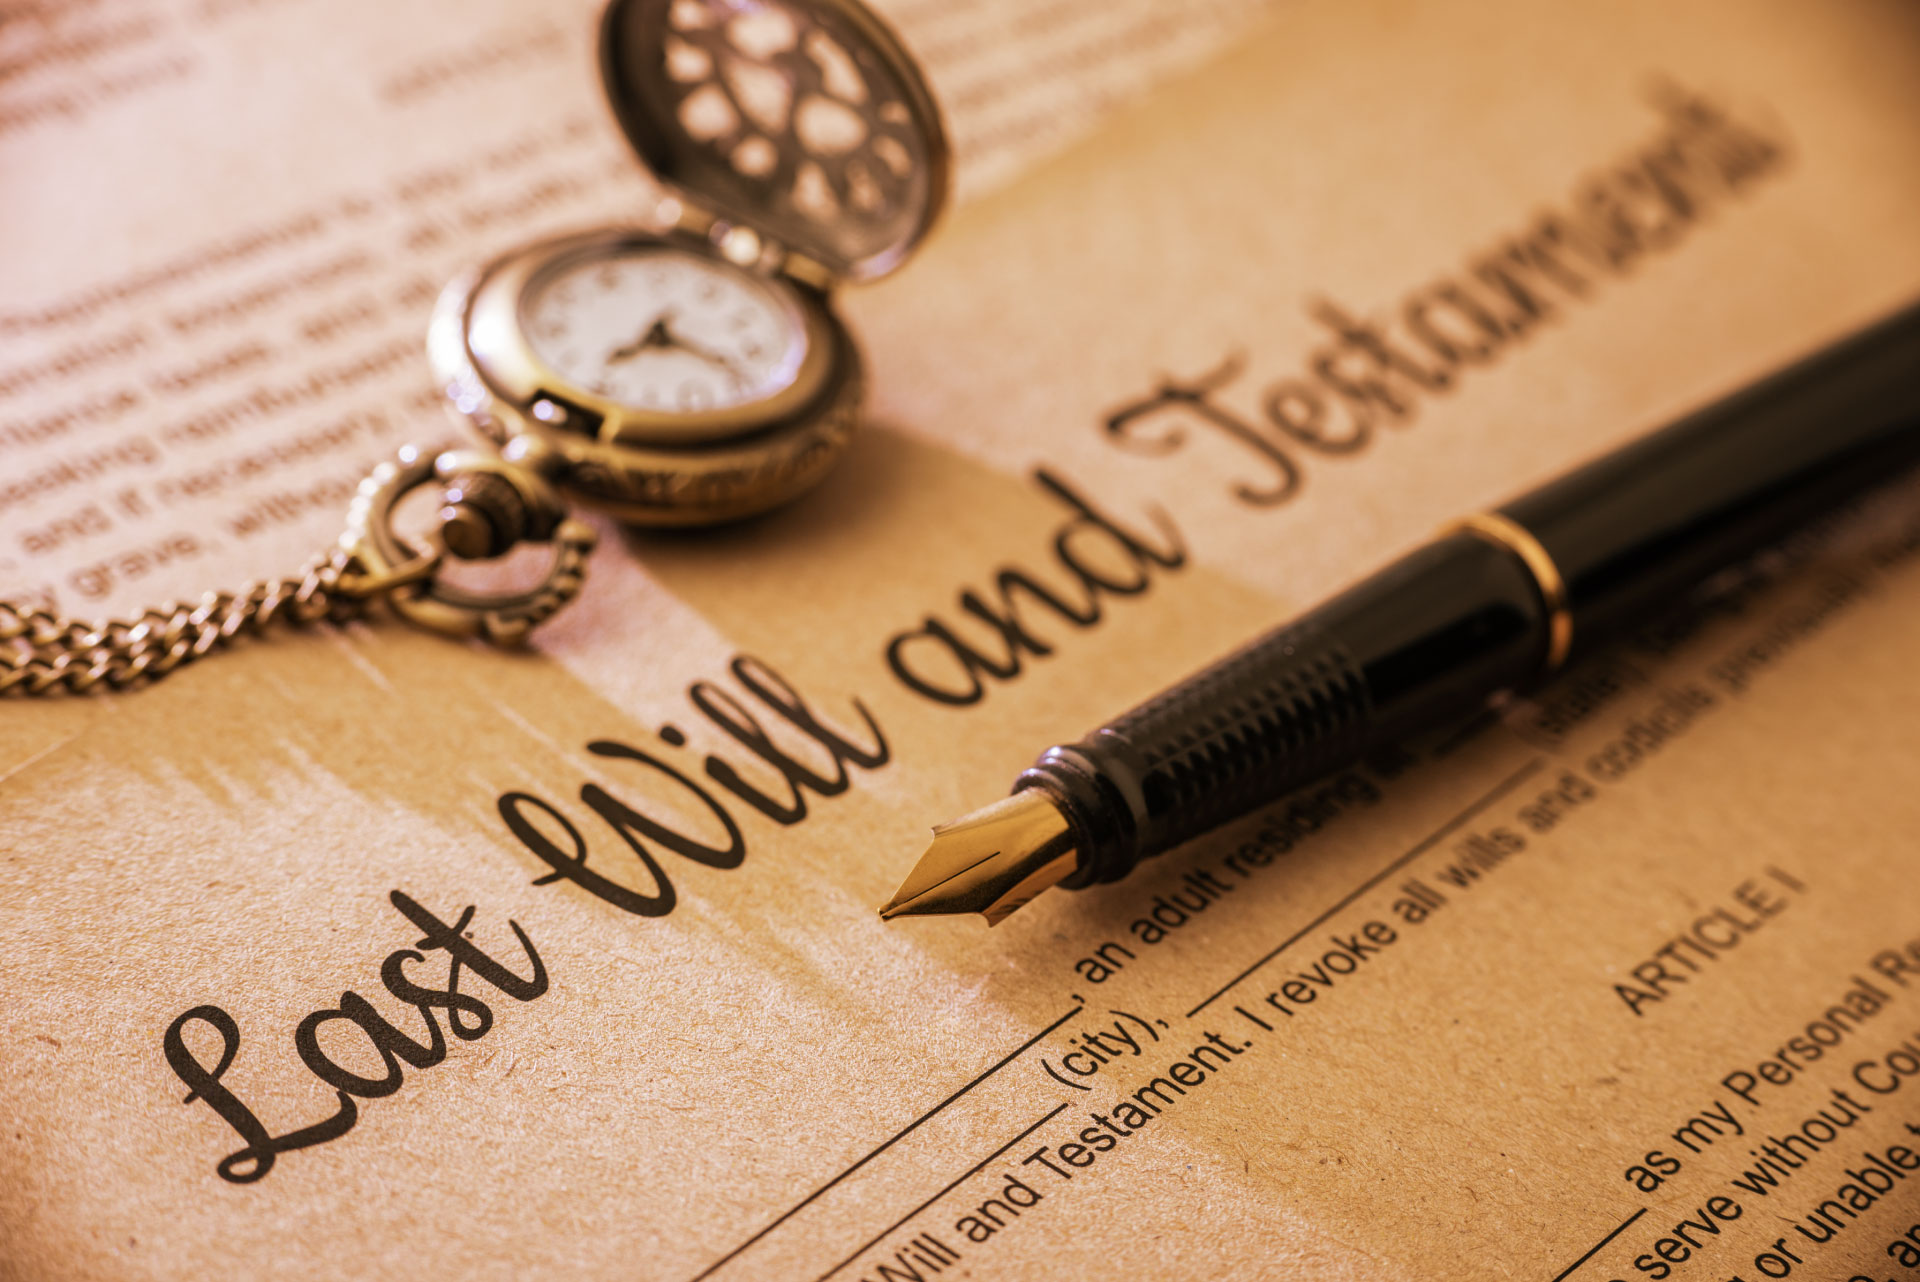 Image of a will and pen